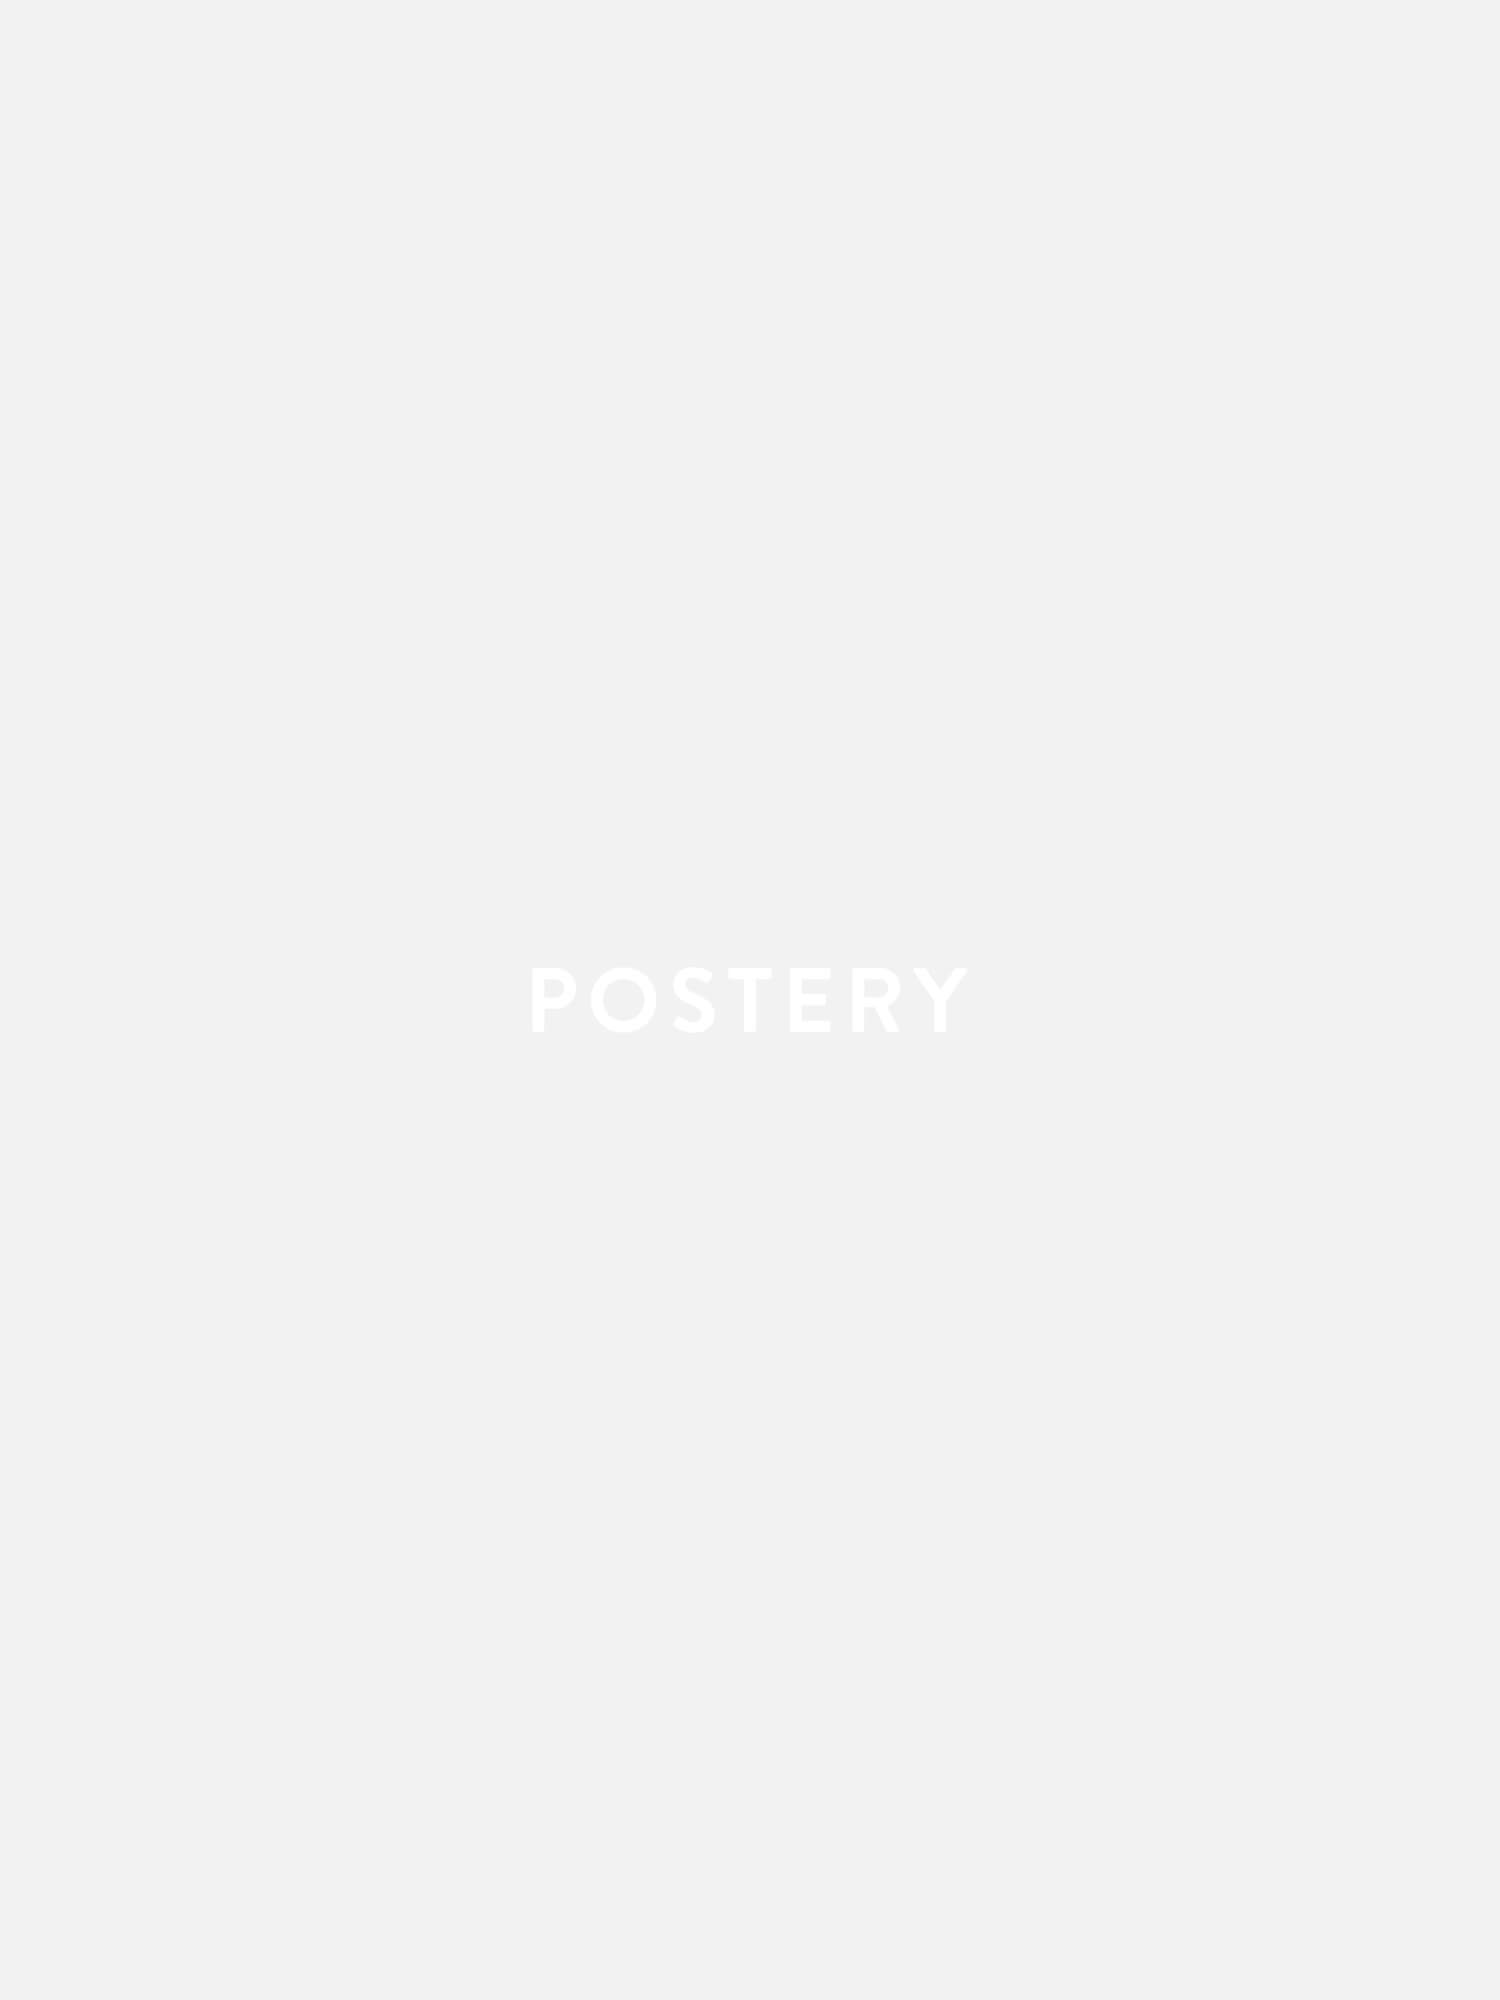 Forget the Mistake Poster